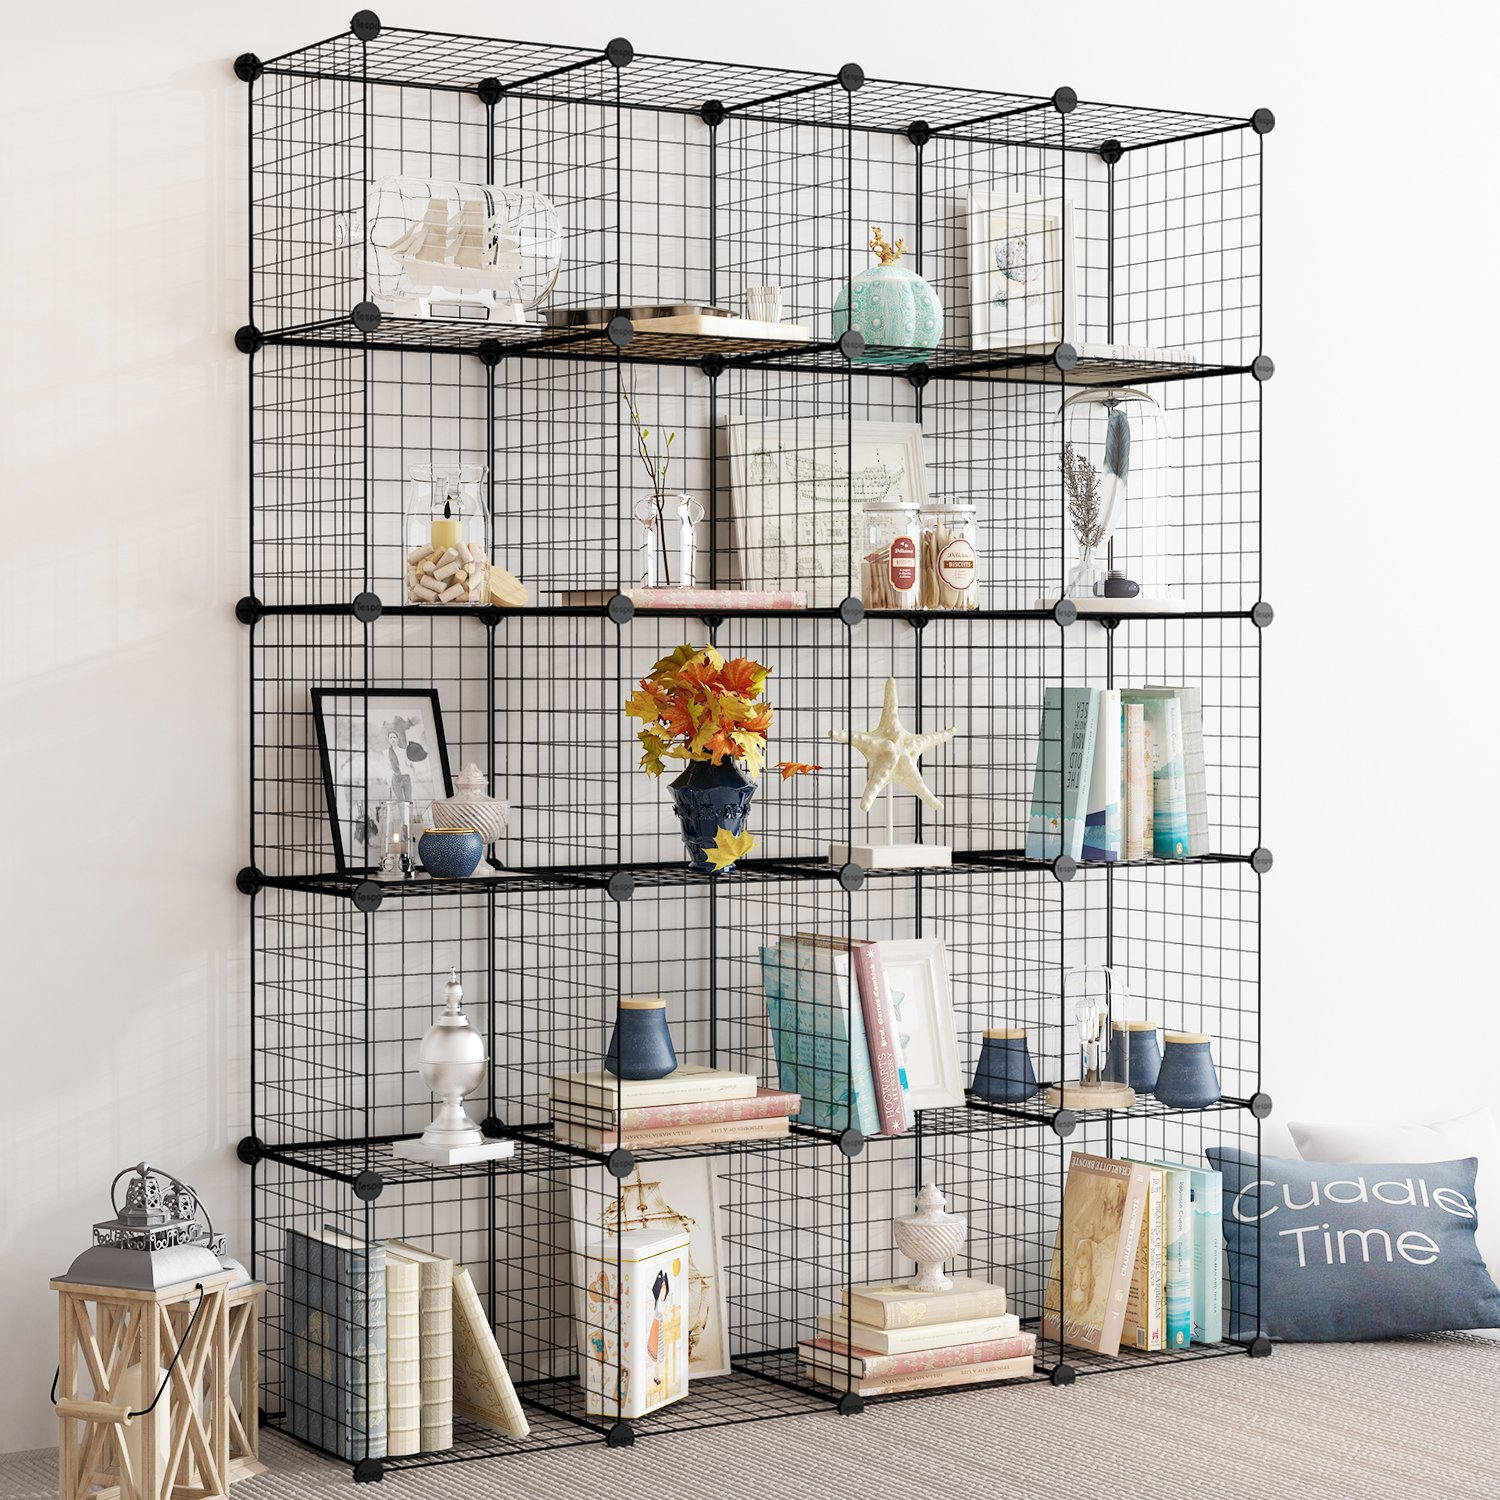 Tespo Wire Storage Cubes Modular Shelving Unit DIY Metal Grid Closet Organizer System, Bookcase, Cabinet (20Cubes) by Tespo